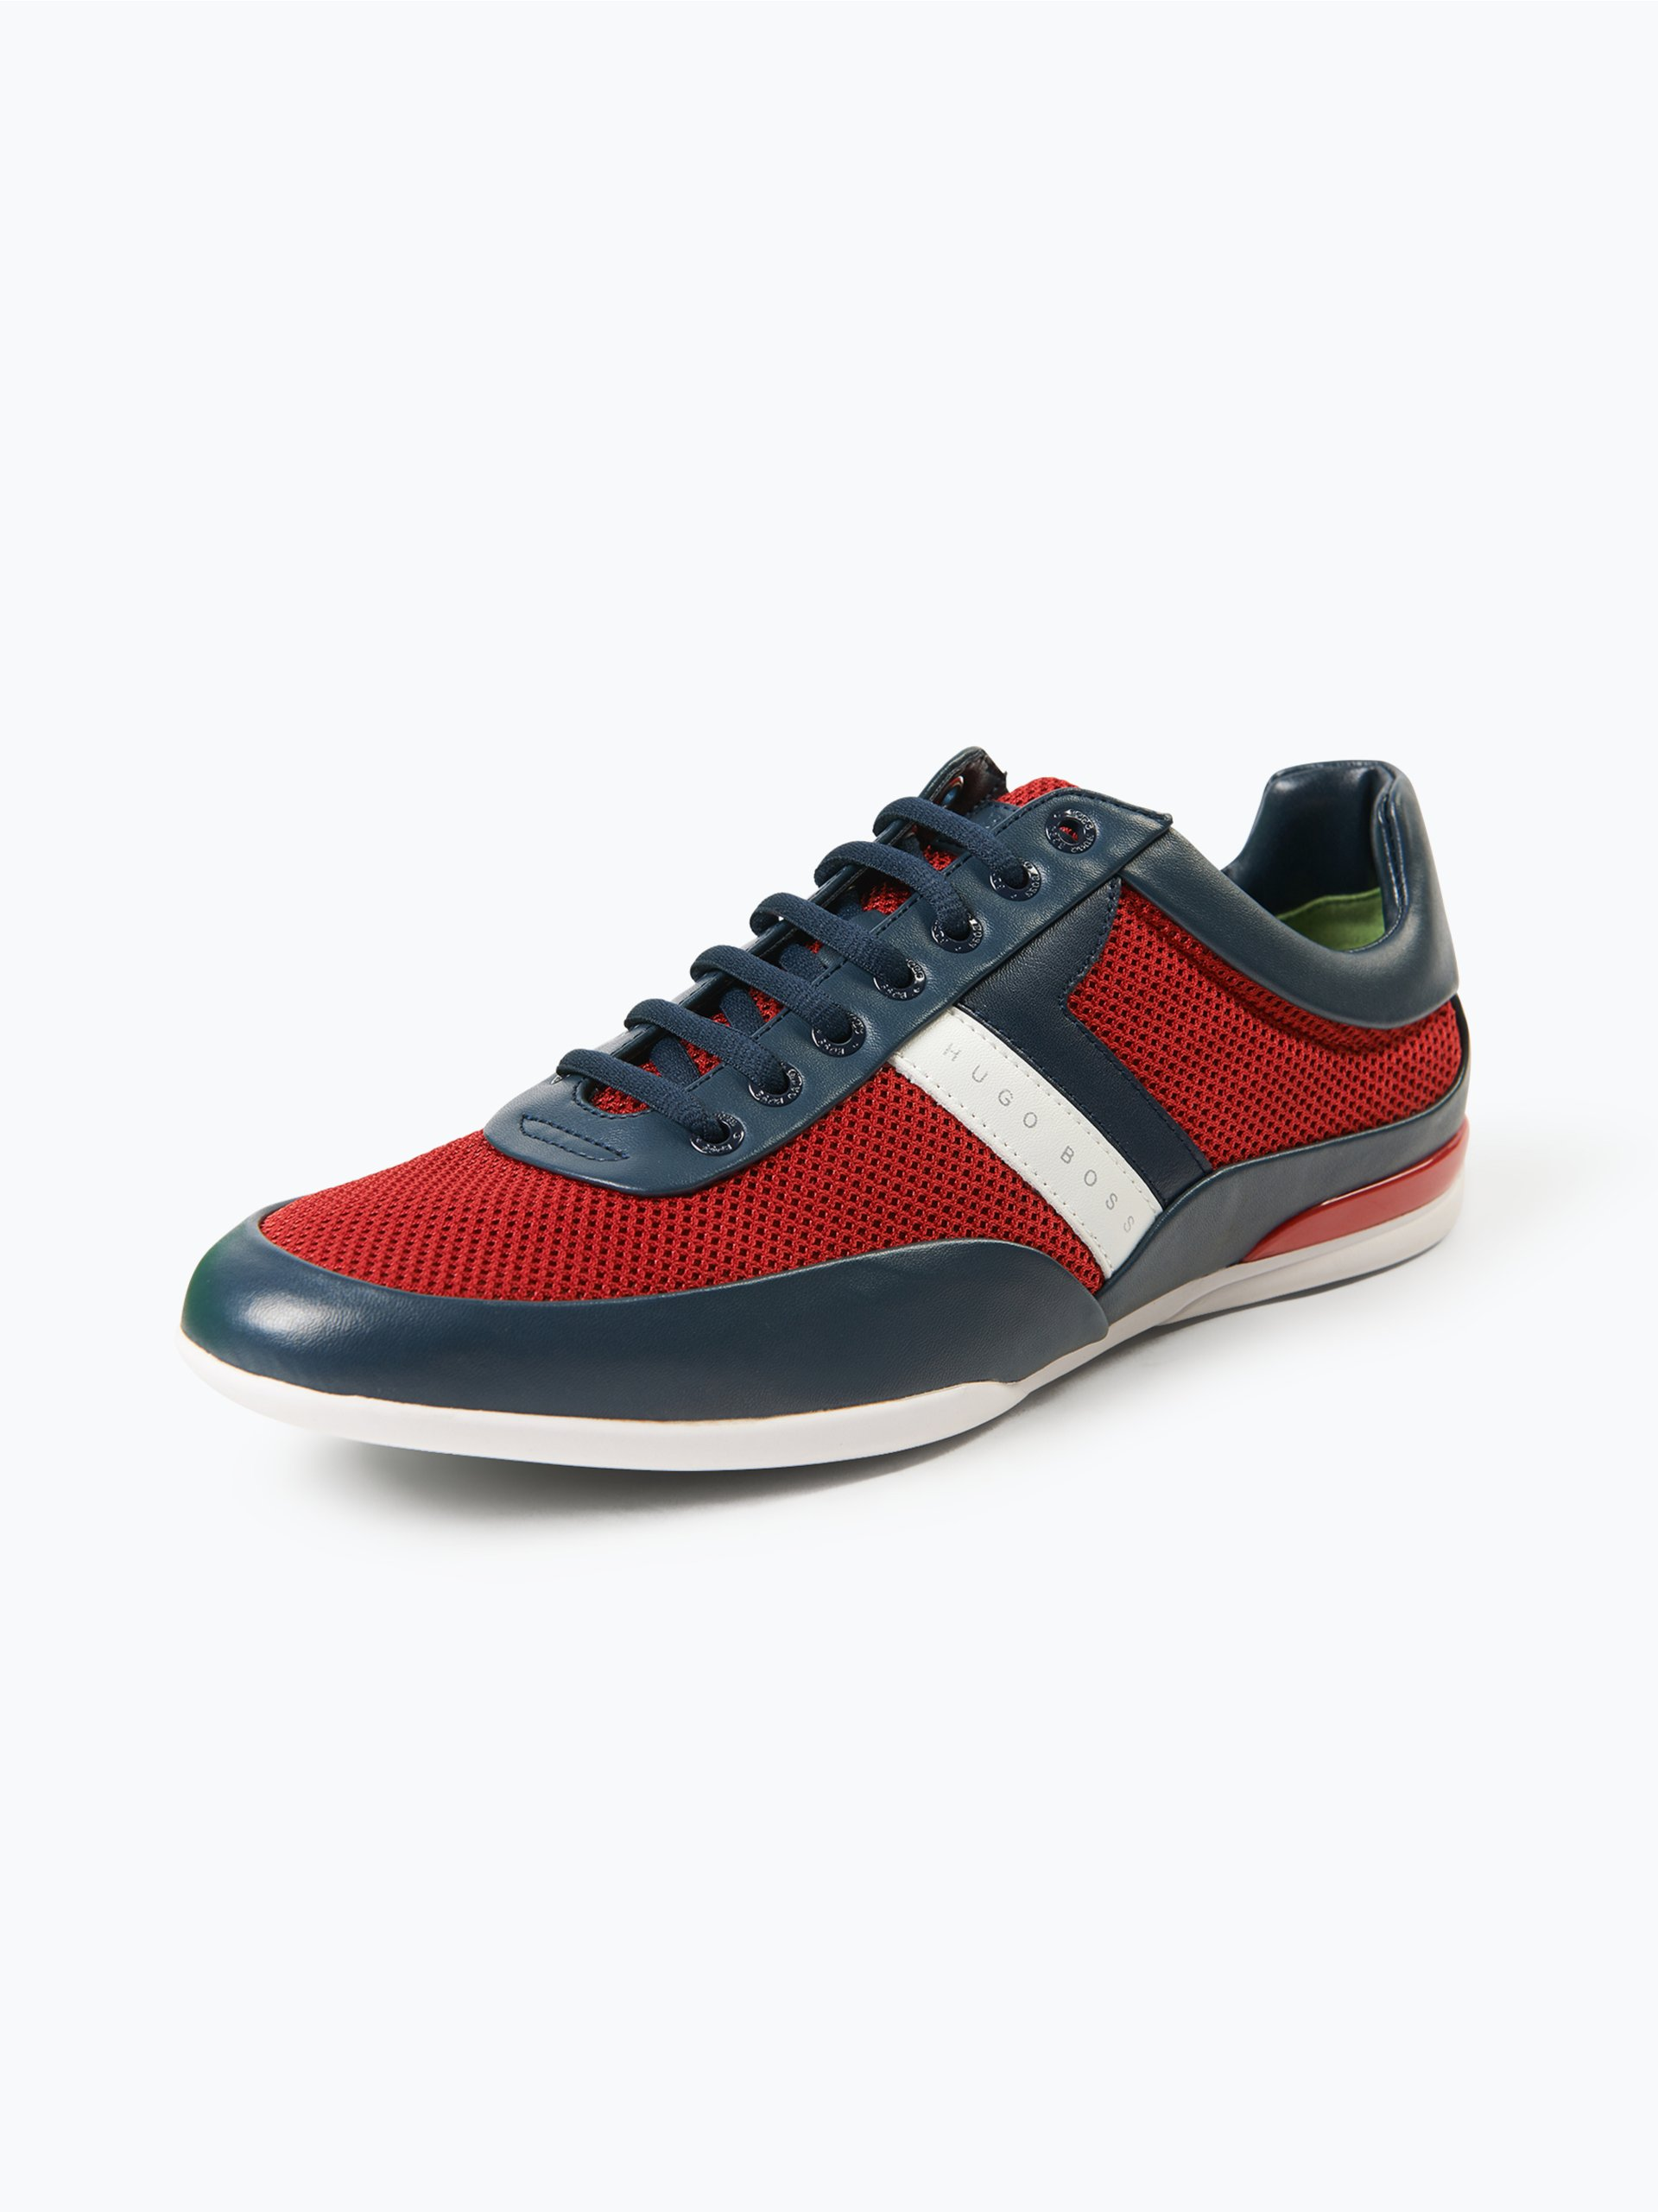 boss green herren sneaker mit leder anteil space lowp syme rot uni online kaufen peek und. Black Bedroom Furniture Sets. Home Design Ideas